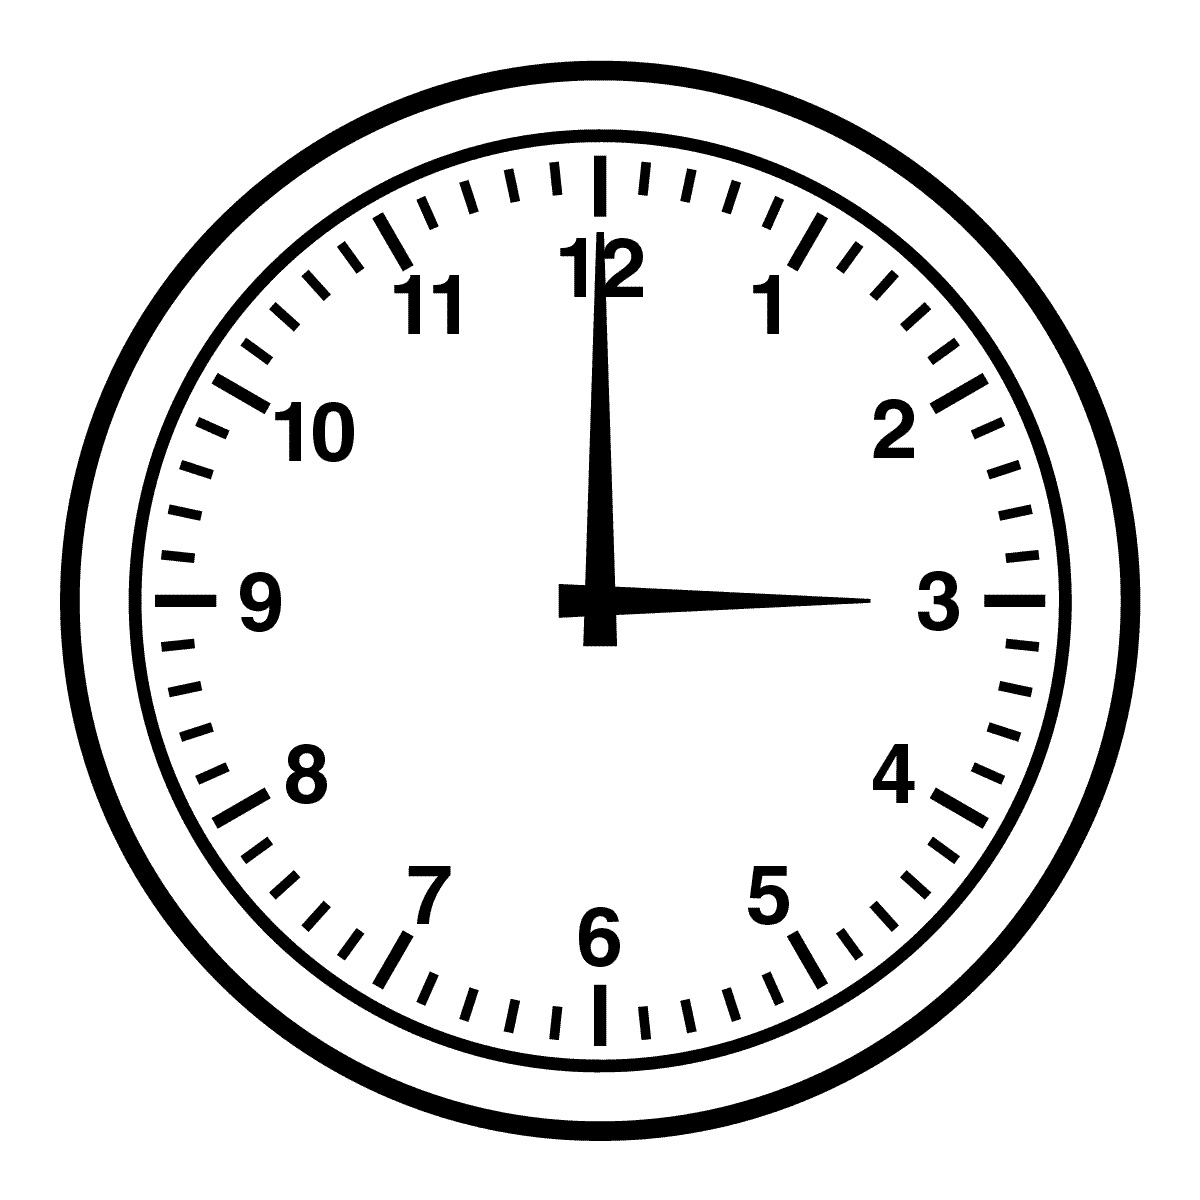 Clocks clipart graphic transparent library 79+ Clock Clipart Free   ClipartLook graphic transparent library